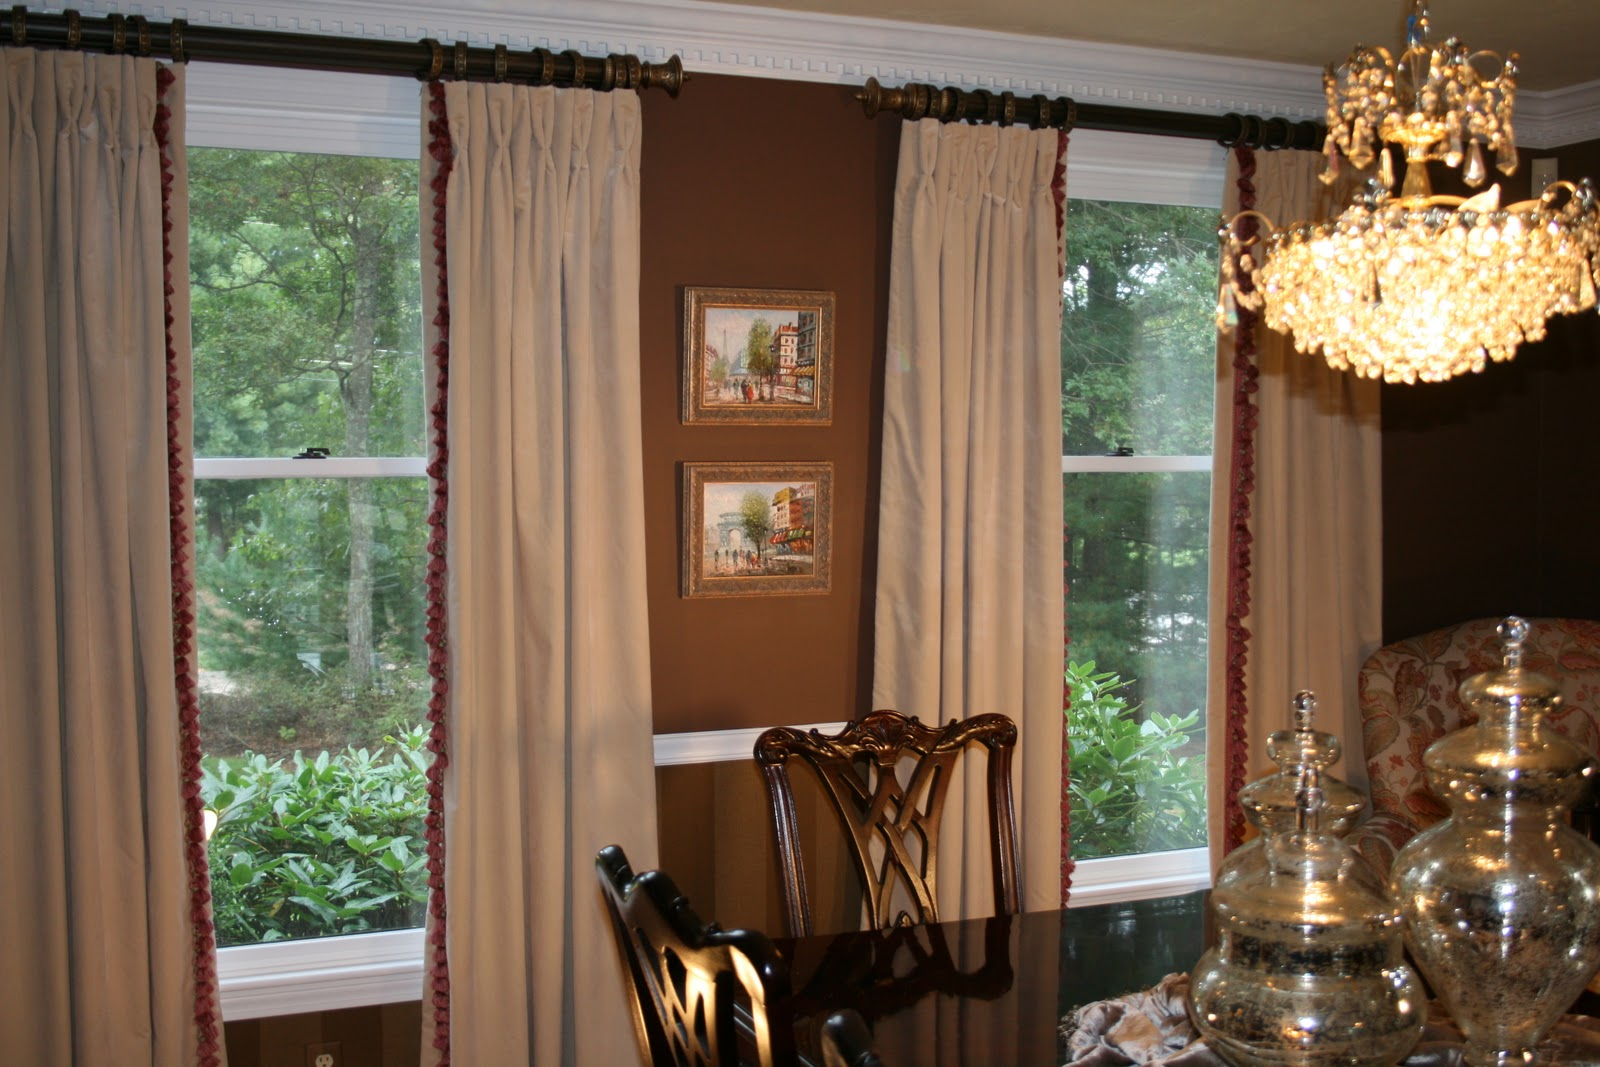 Redecorating dining room window treatments 7 dotty Dining room window curtains